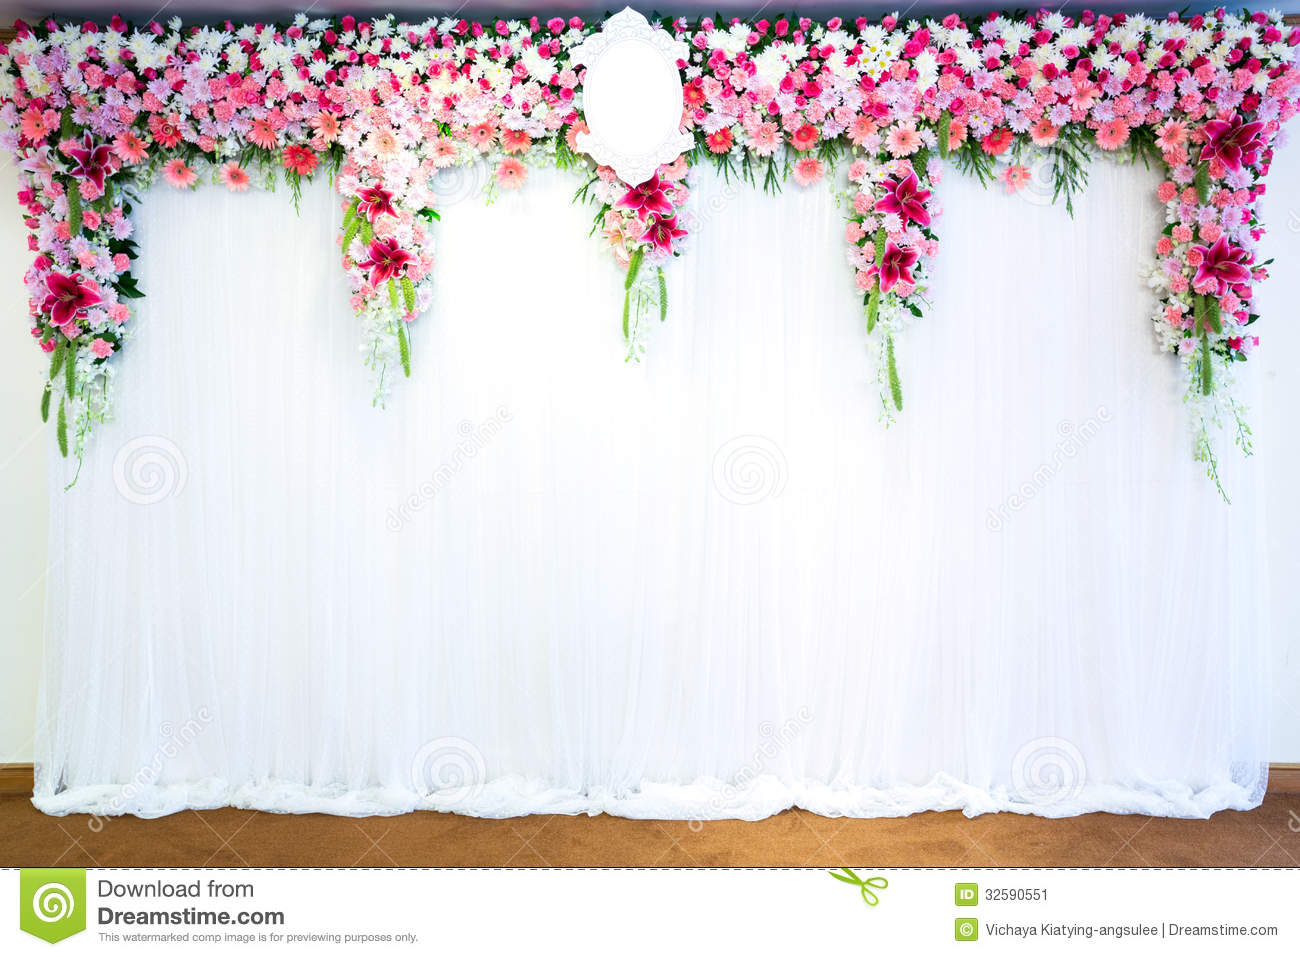 Flowers Archway Stock Image - Image: 32590551